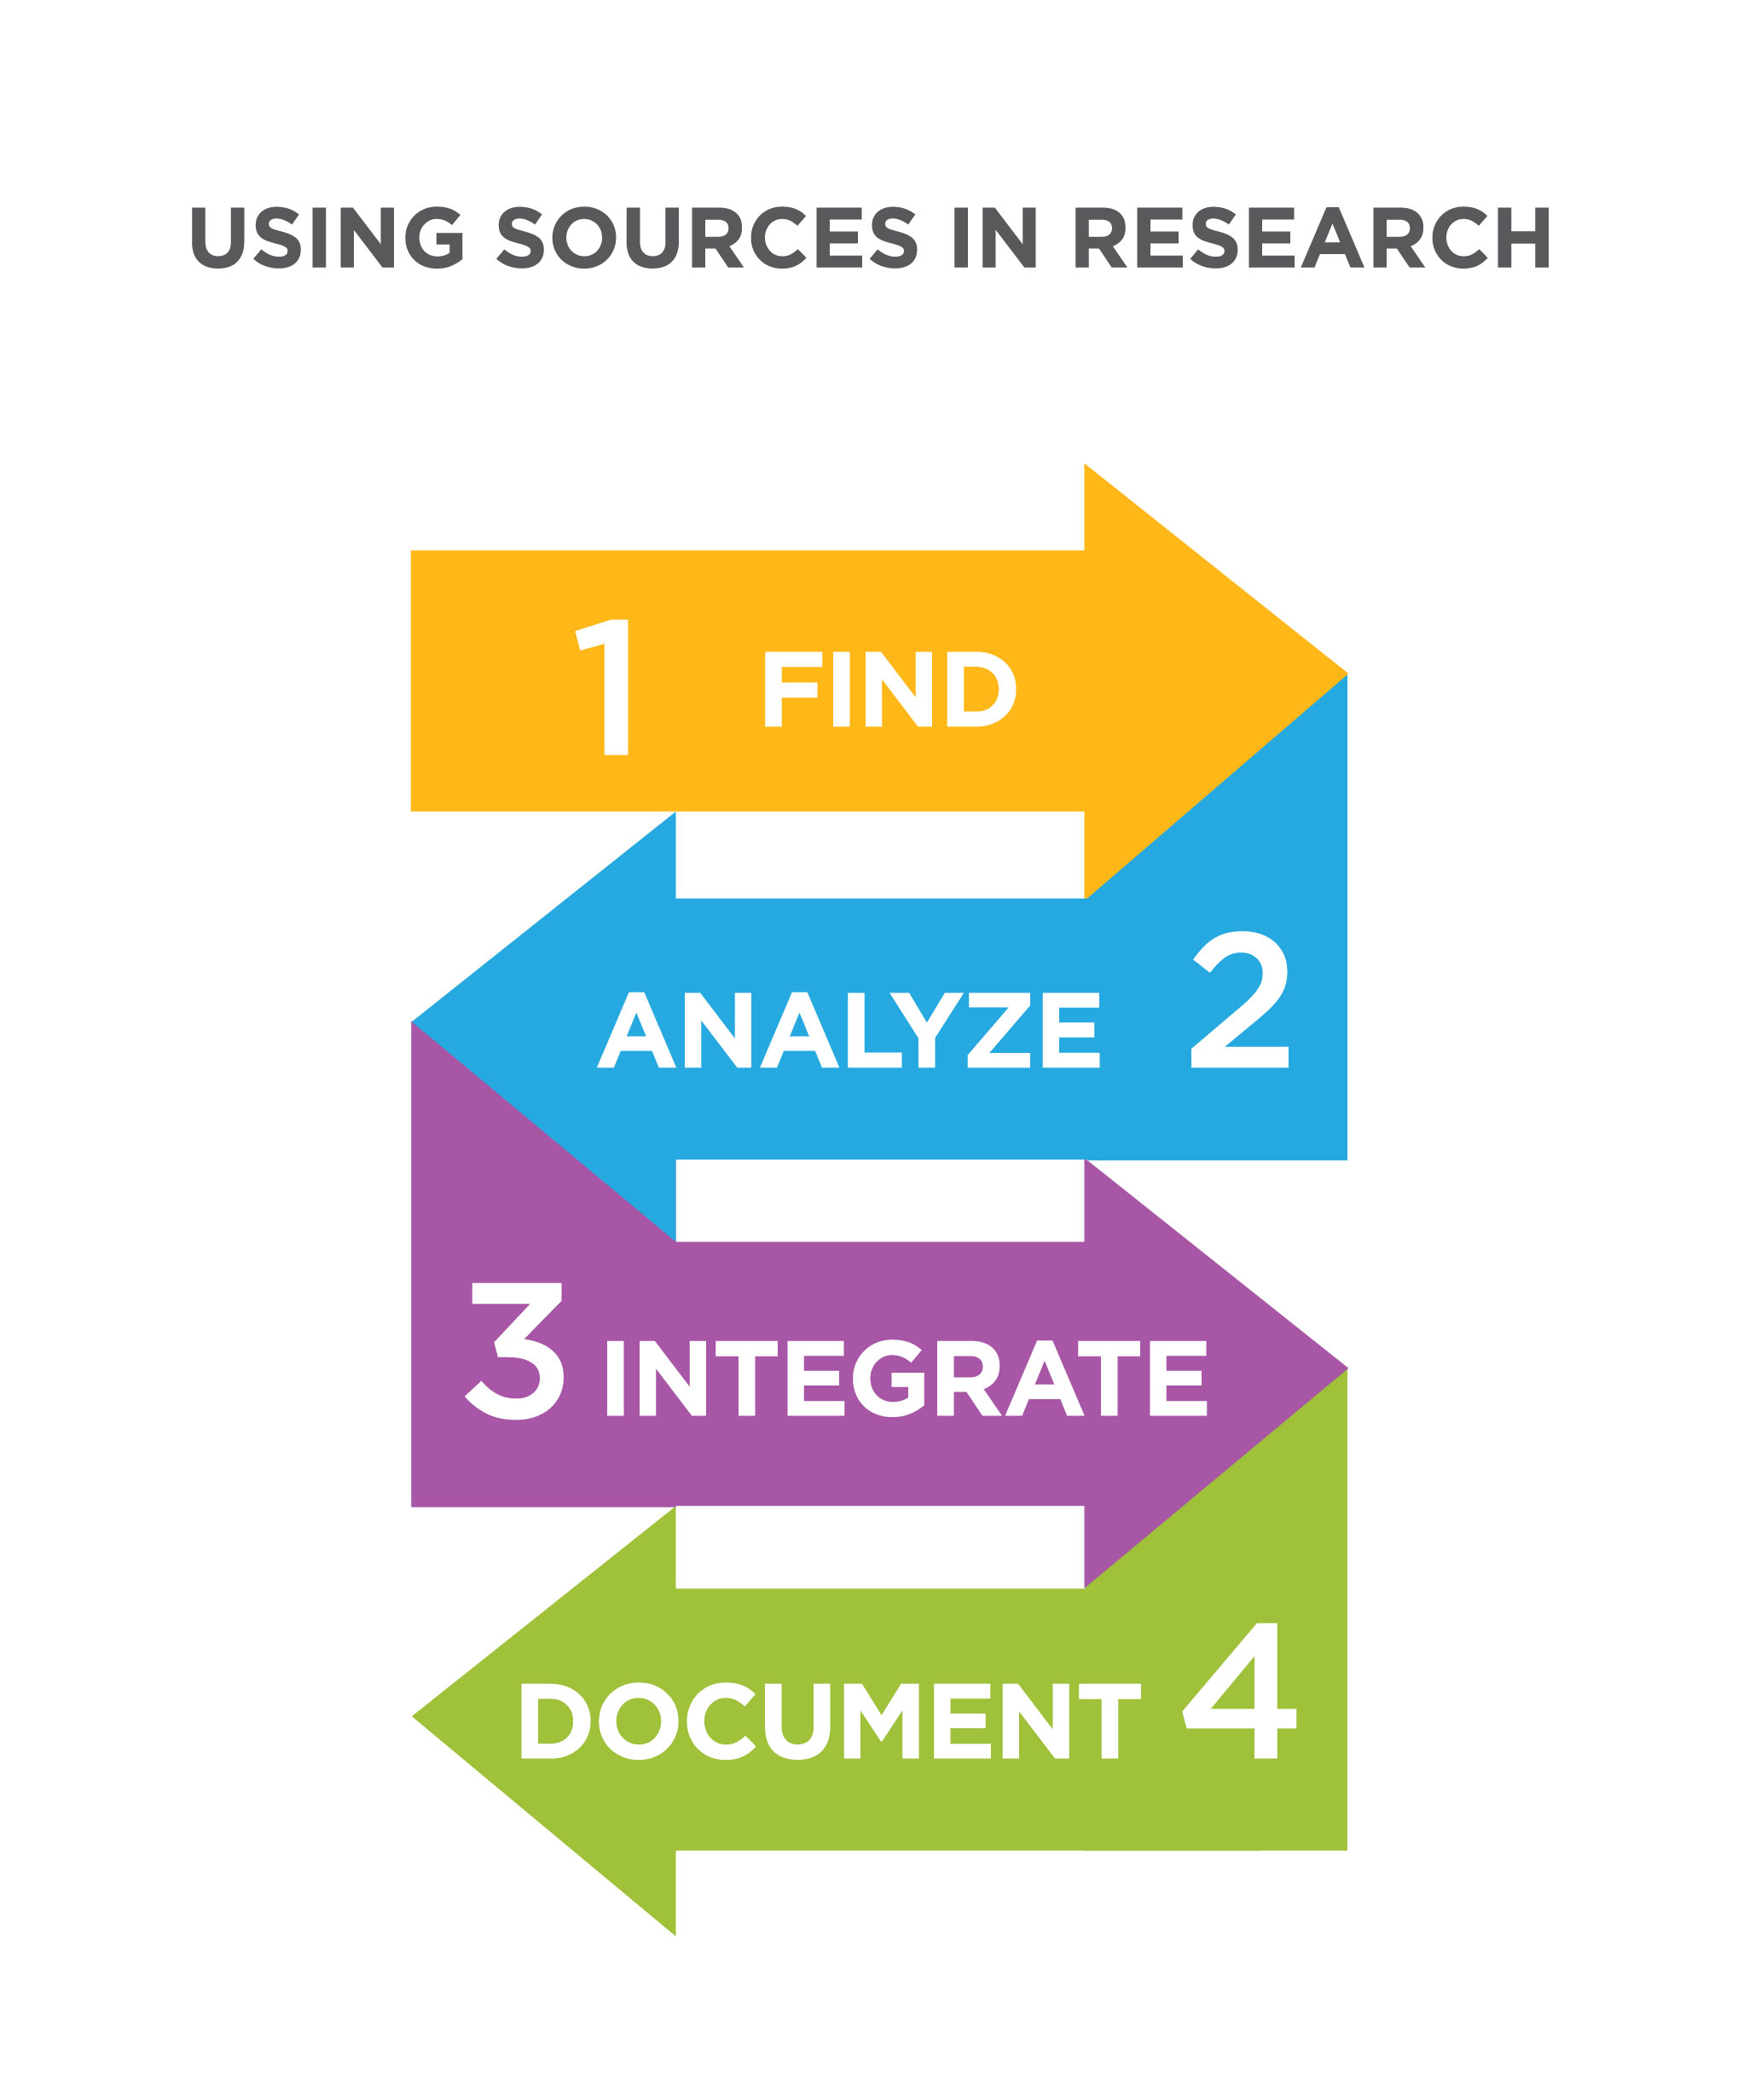 Using sources in research: find, analyze, integrate, document.